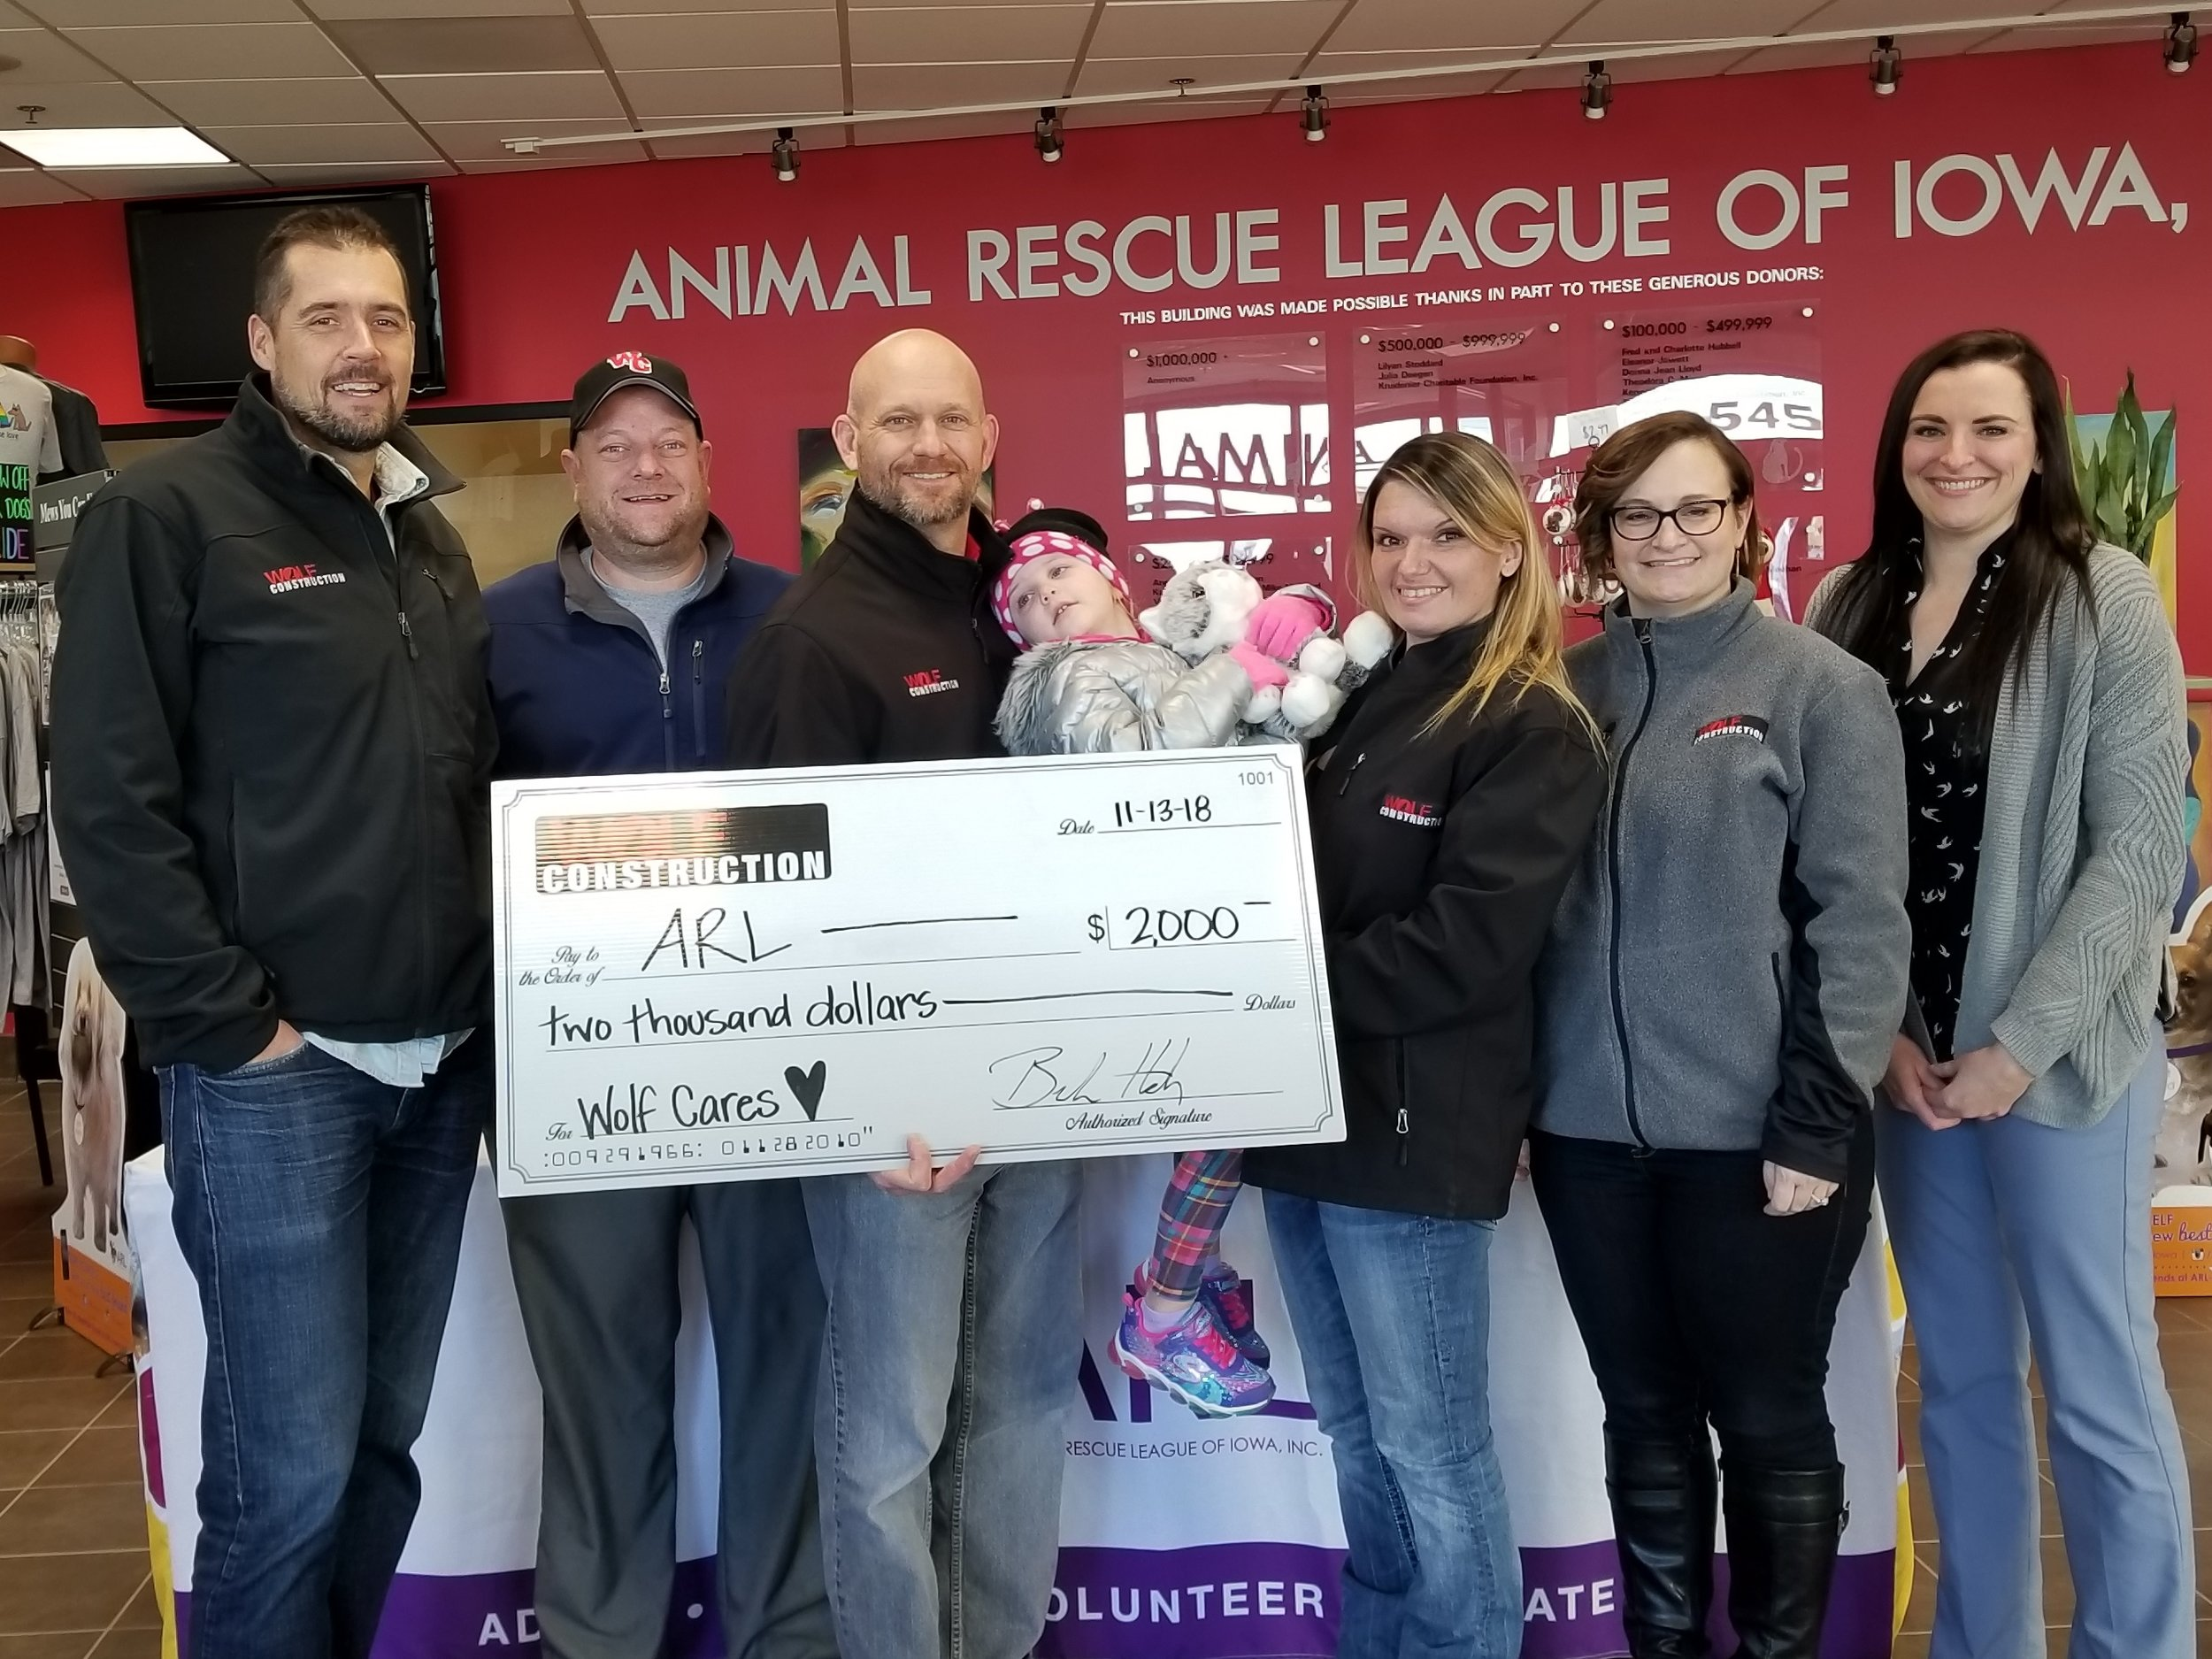 Animal Rescue League of Iowa - Wolf Construction is proud to again donate to the Animal Rescue League of Iowa. The ARL is Iowa's largest nonprofit animal shelter, caring for thousands of pets each year. They specialize in adoption, humane education, pet behavior training, spay/neuter, animal cruelty intervention and more.Find out how you can be involved by visiting their website:Animal Rescue League of Iowa, Inc.